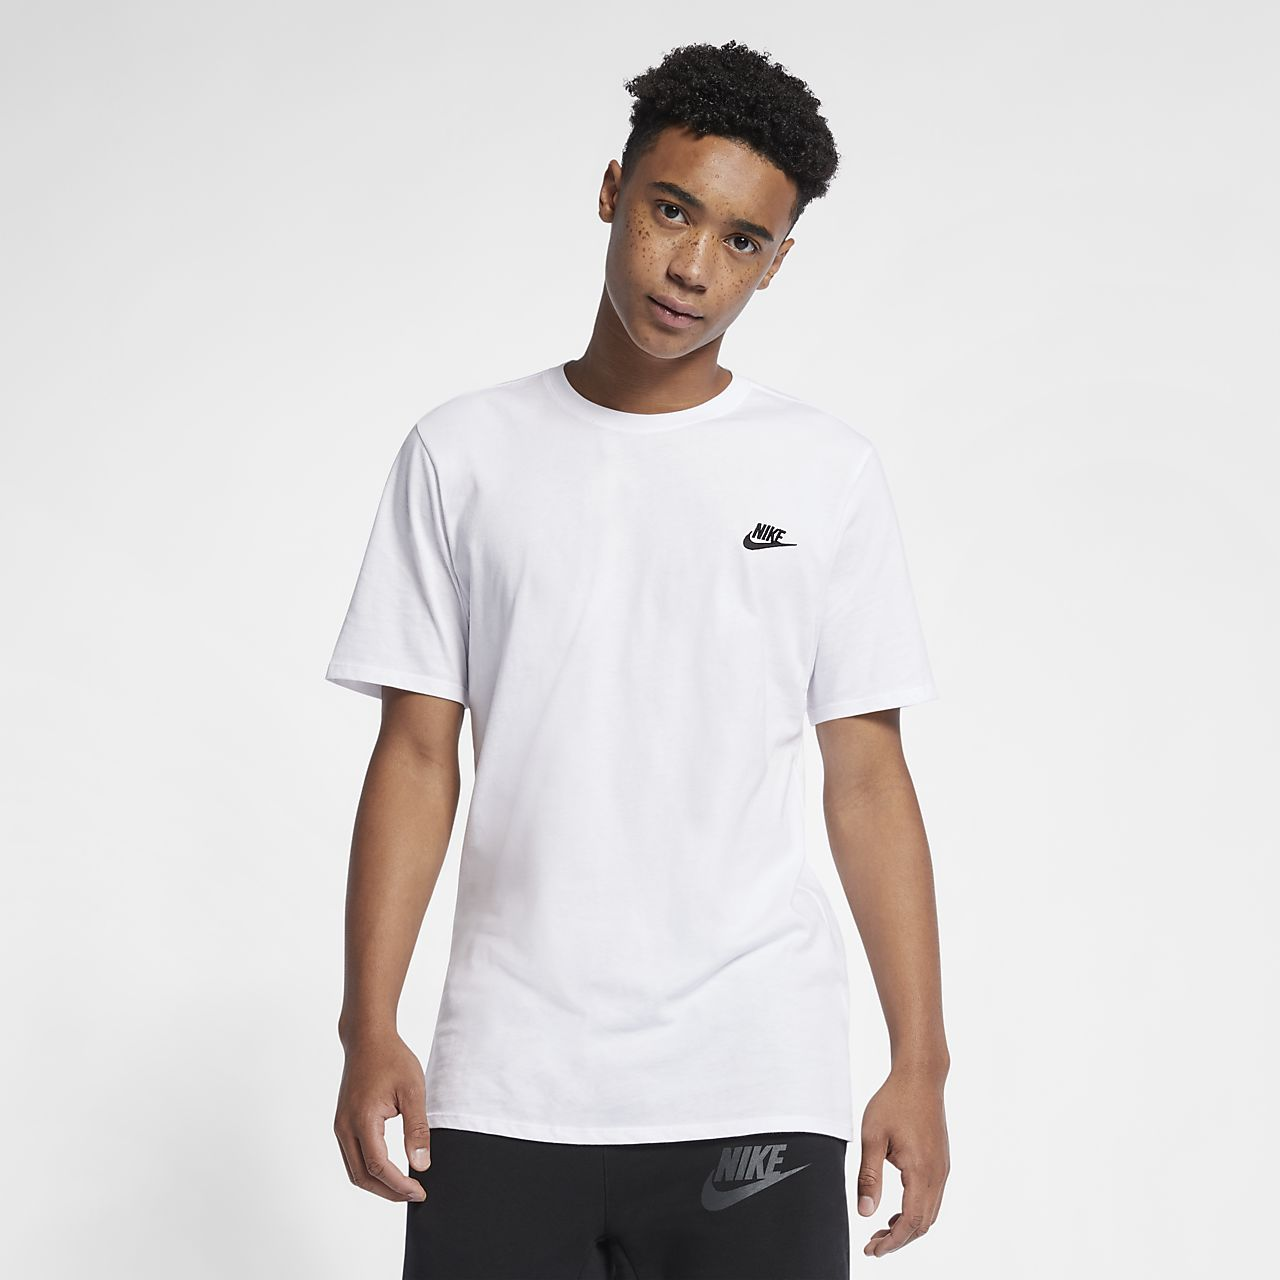 Nike sportswear men 39 s t shirt for Tahari t shirt mens